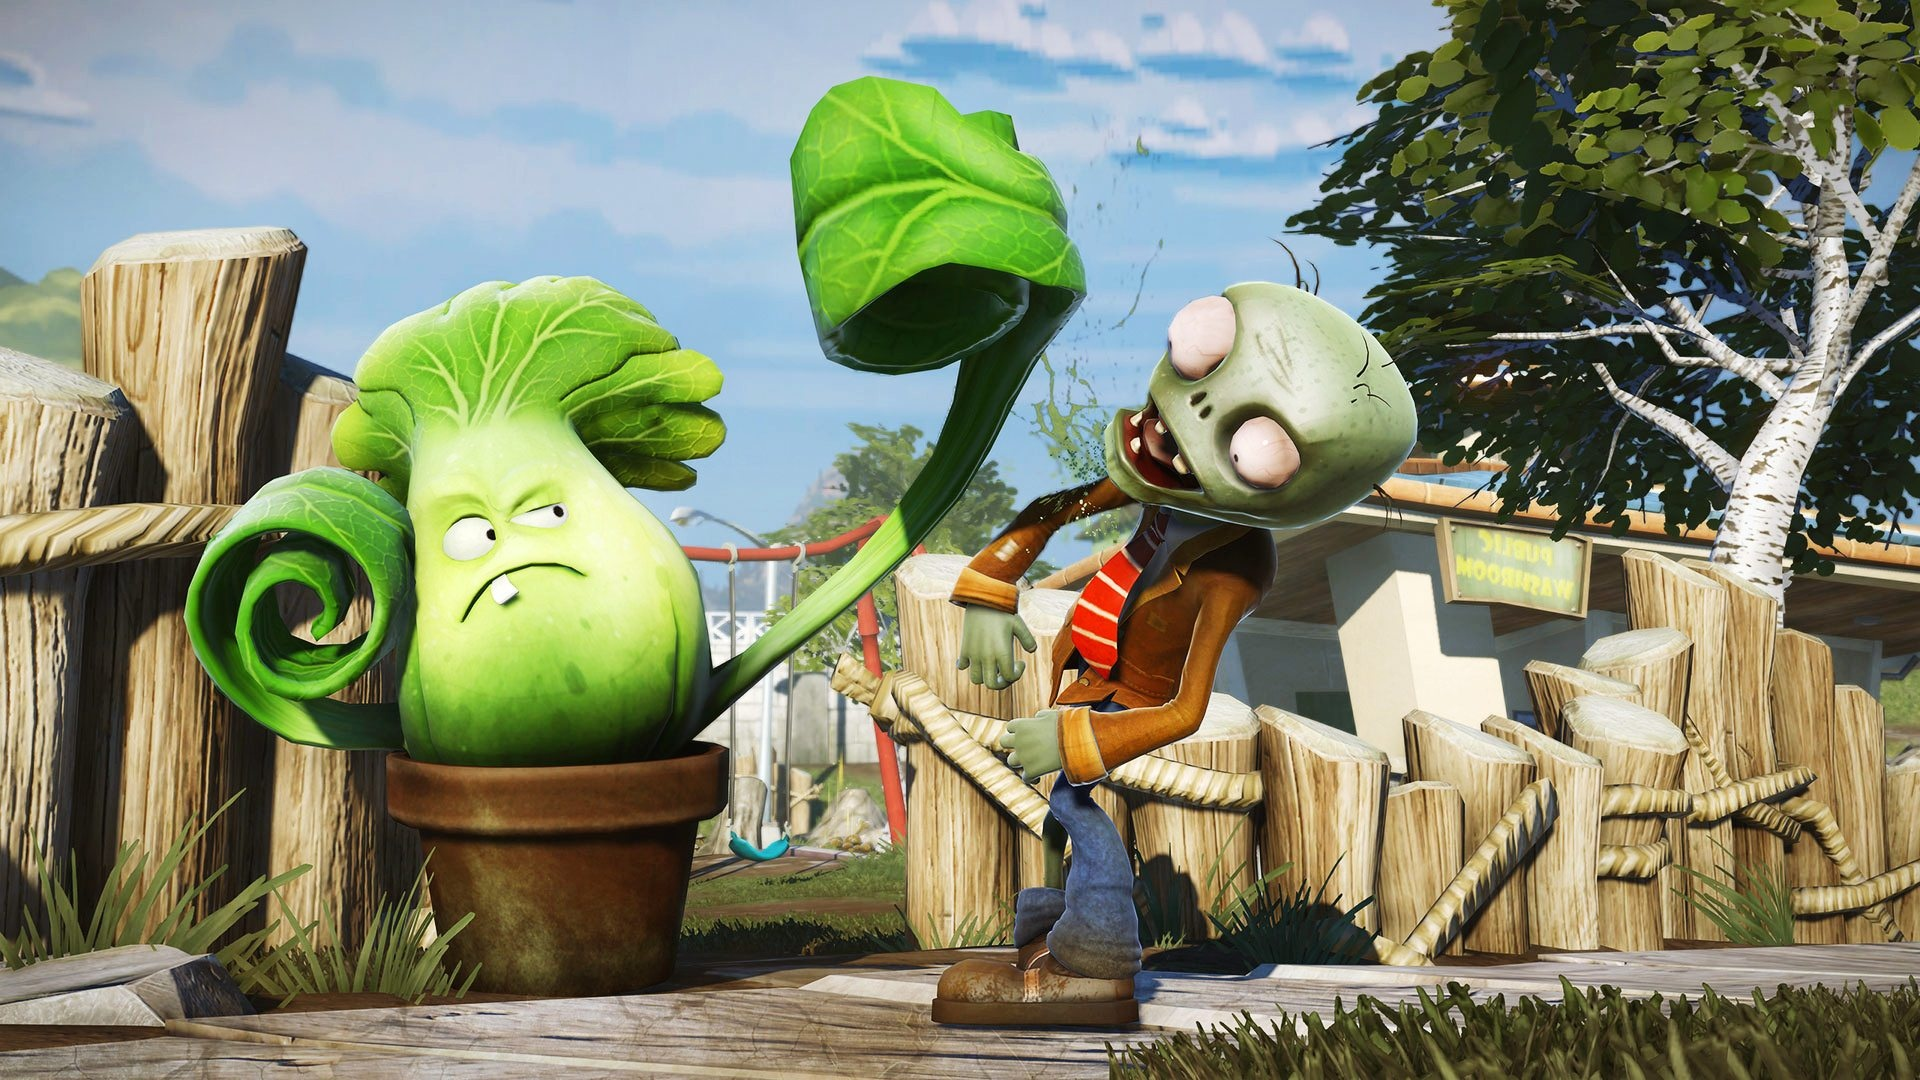 ЕА начала закрытое тестирование нового шутера по Plants vs. Zombies